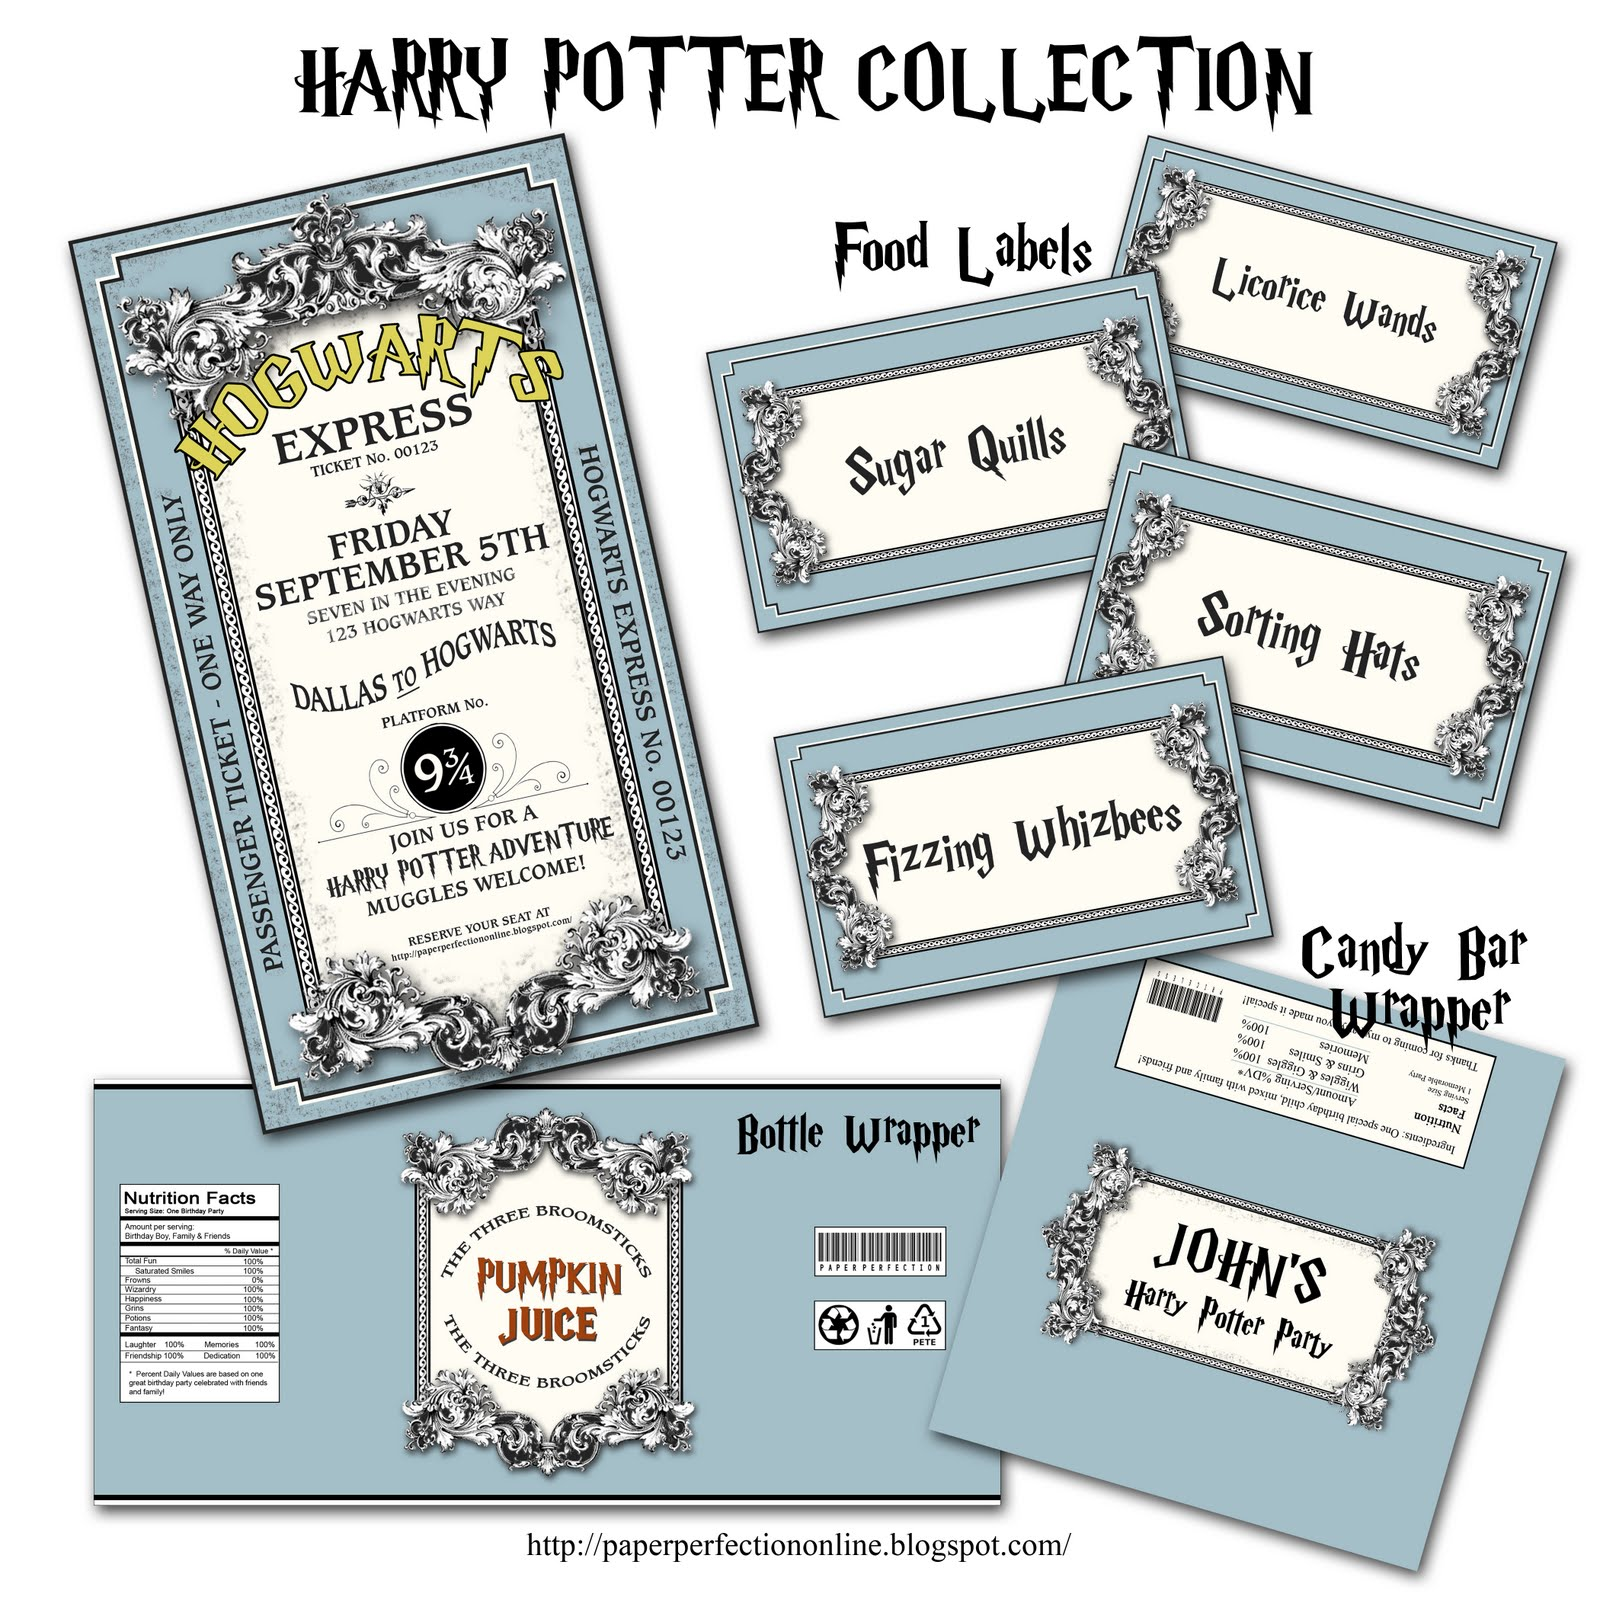 It's just a photo of Revered Harry Potter Print Outs